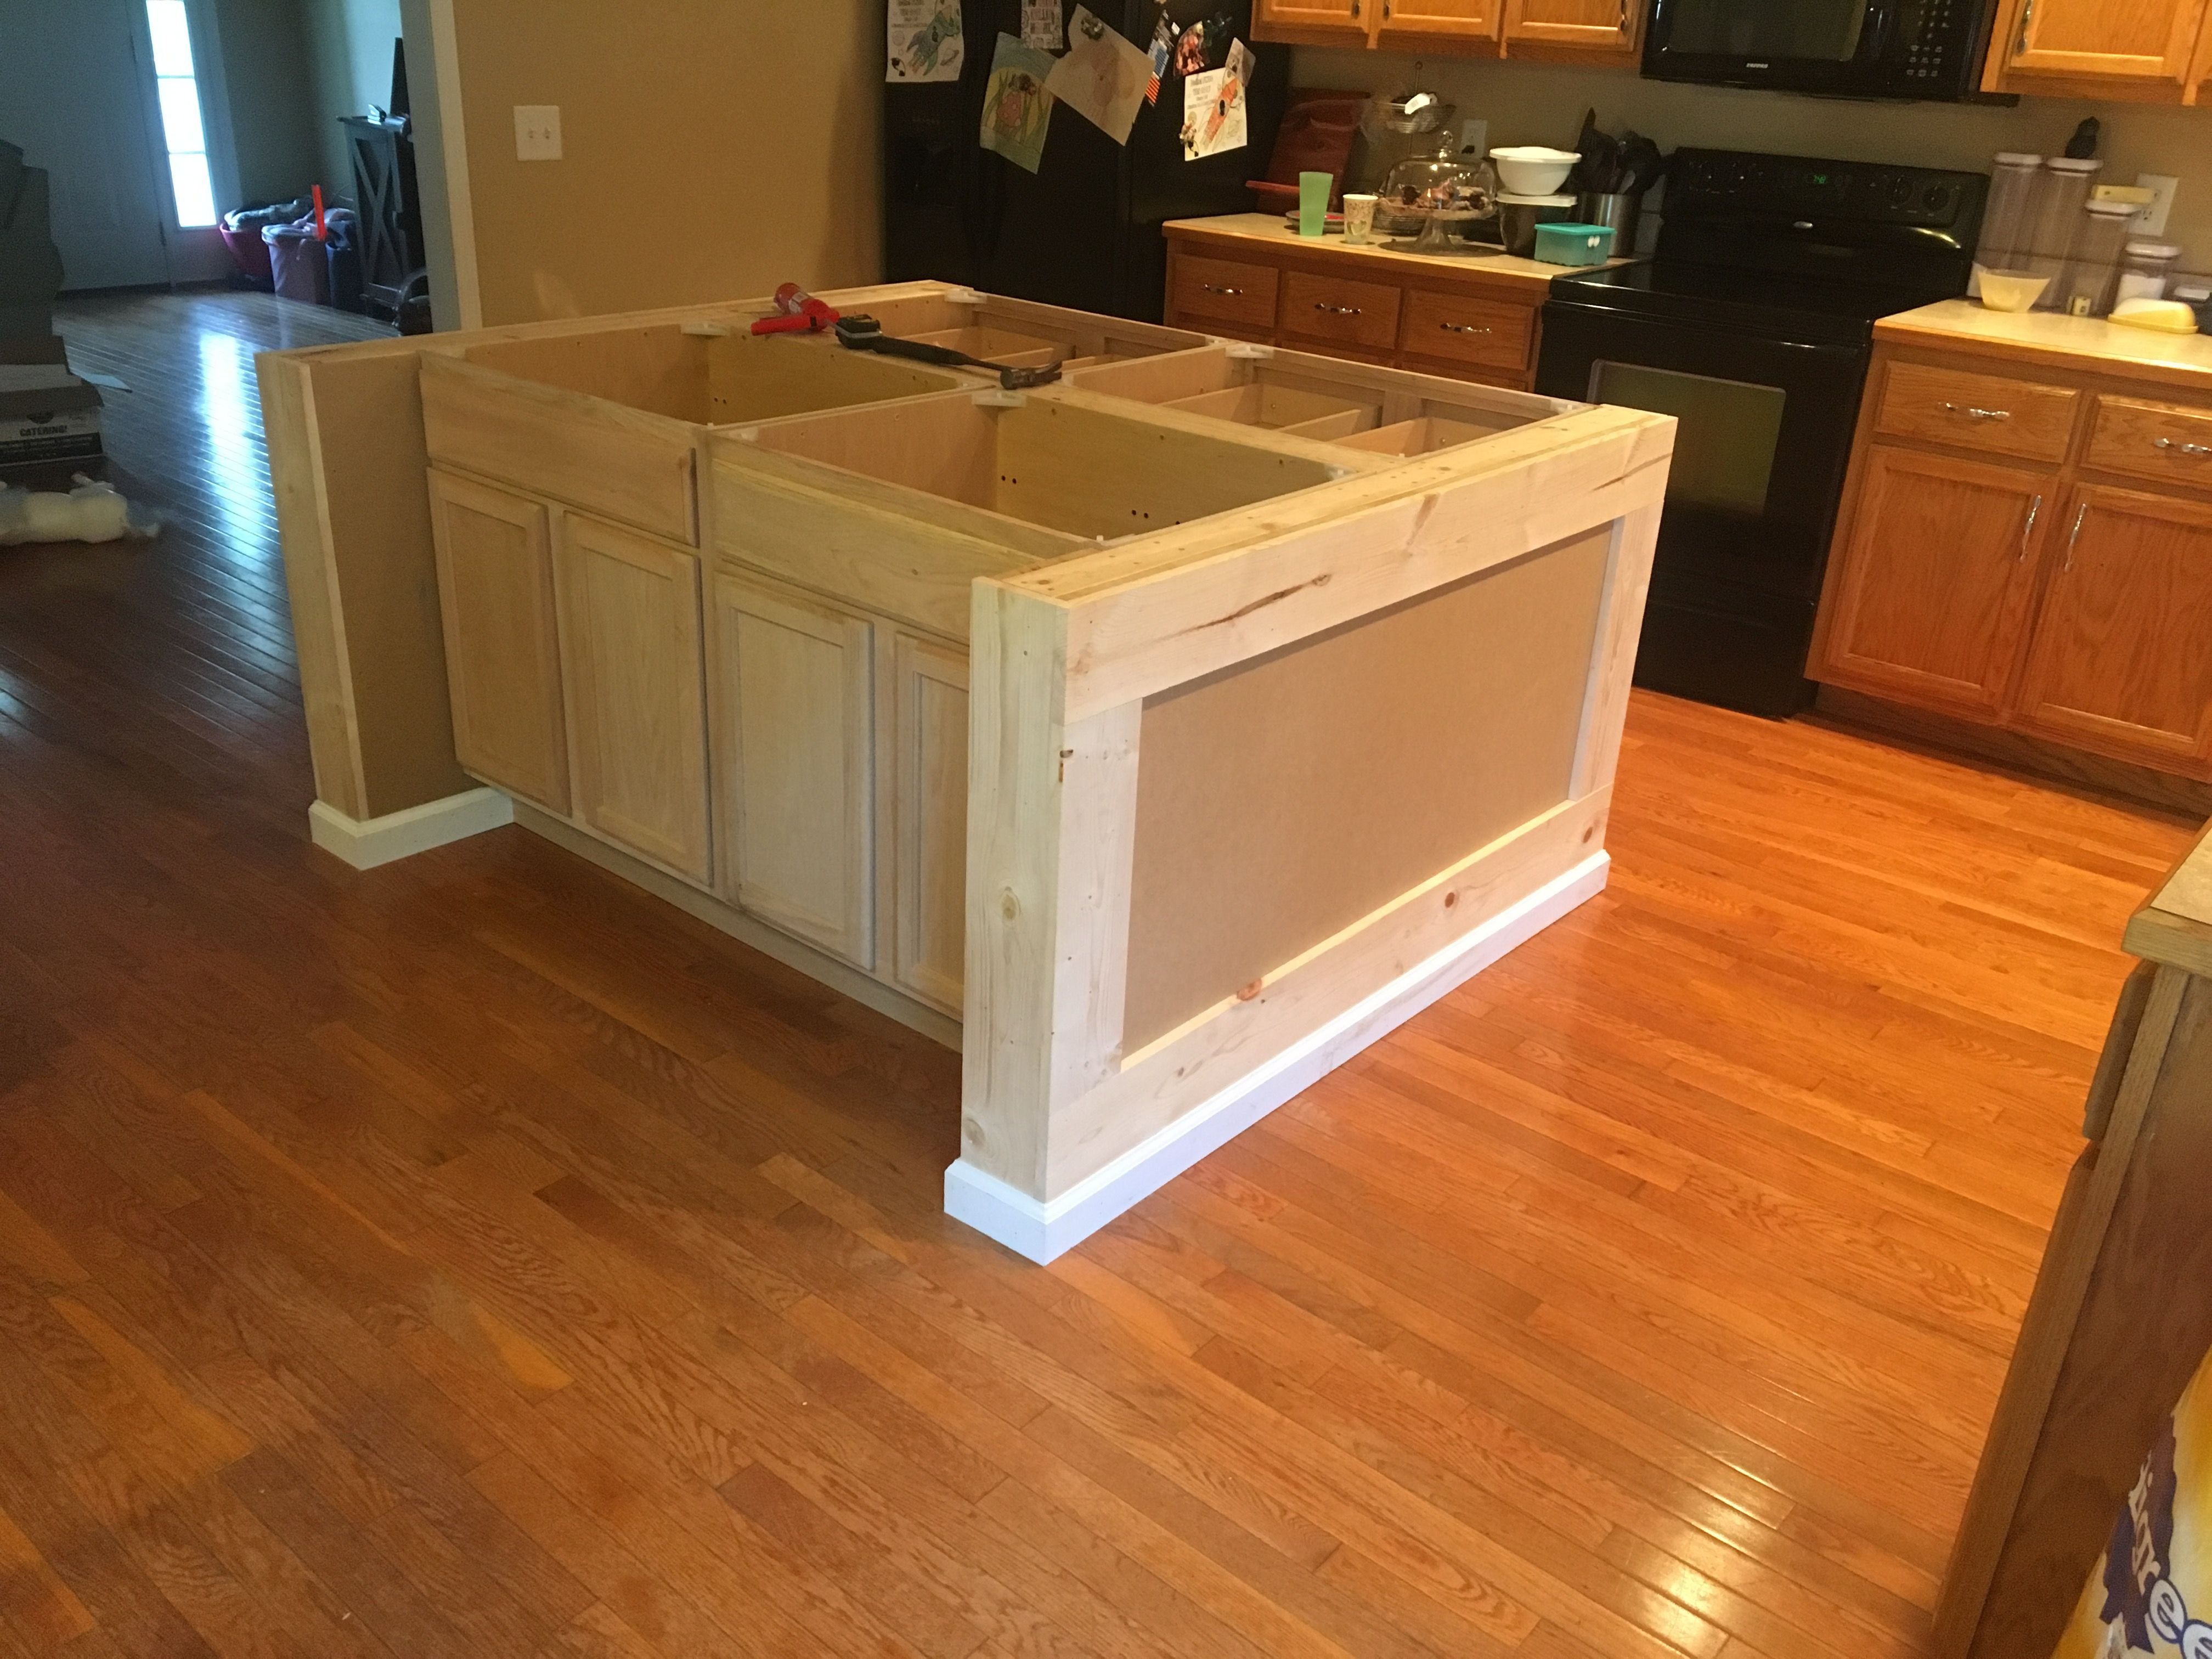 Stock Cabinets And Some Custom Framing Make For A Great Diy Island Building A Kitchen Kitchen Island Using Stock Cabinets Kitchen Island Plans